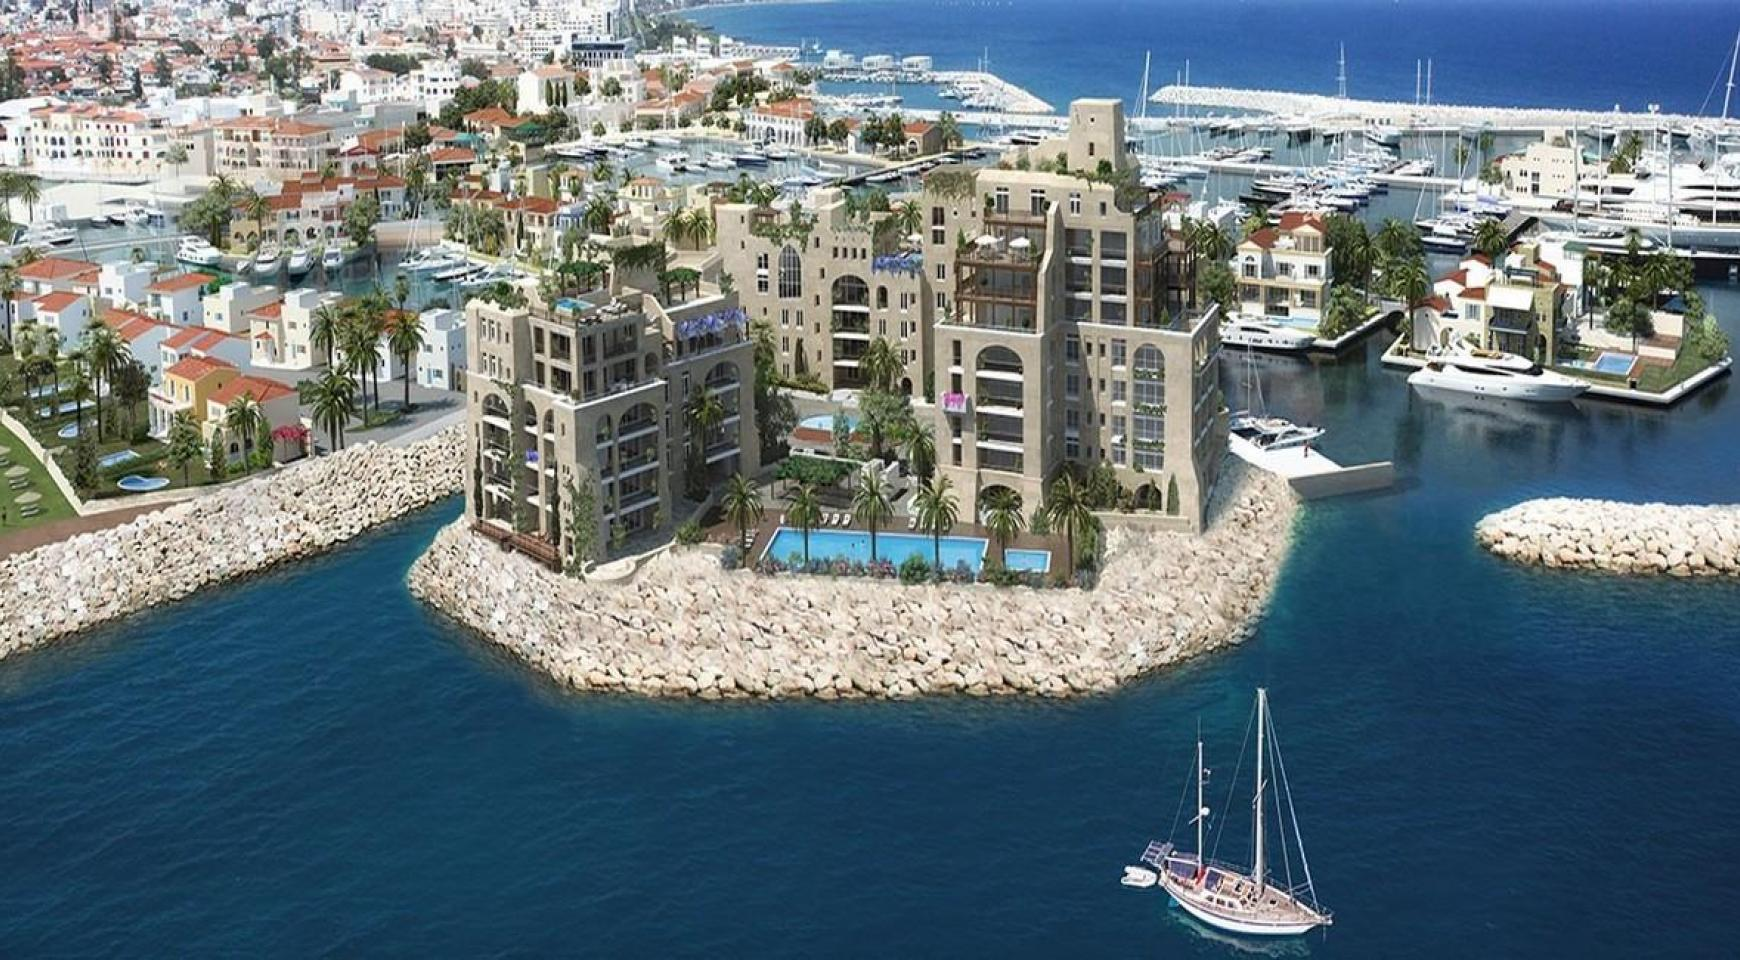 3 Bedroom Apartment in an Exclusive Project on the Sea - 2